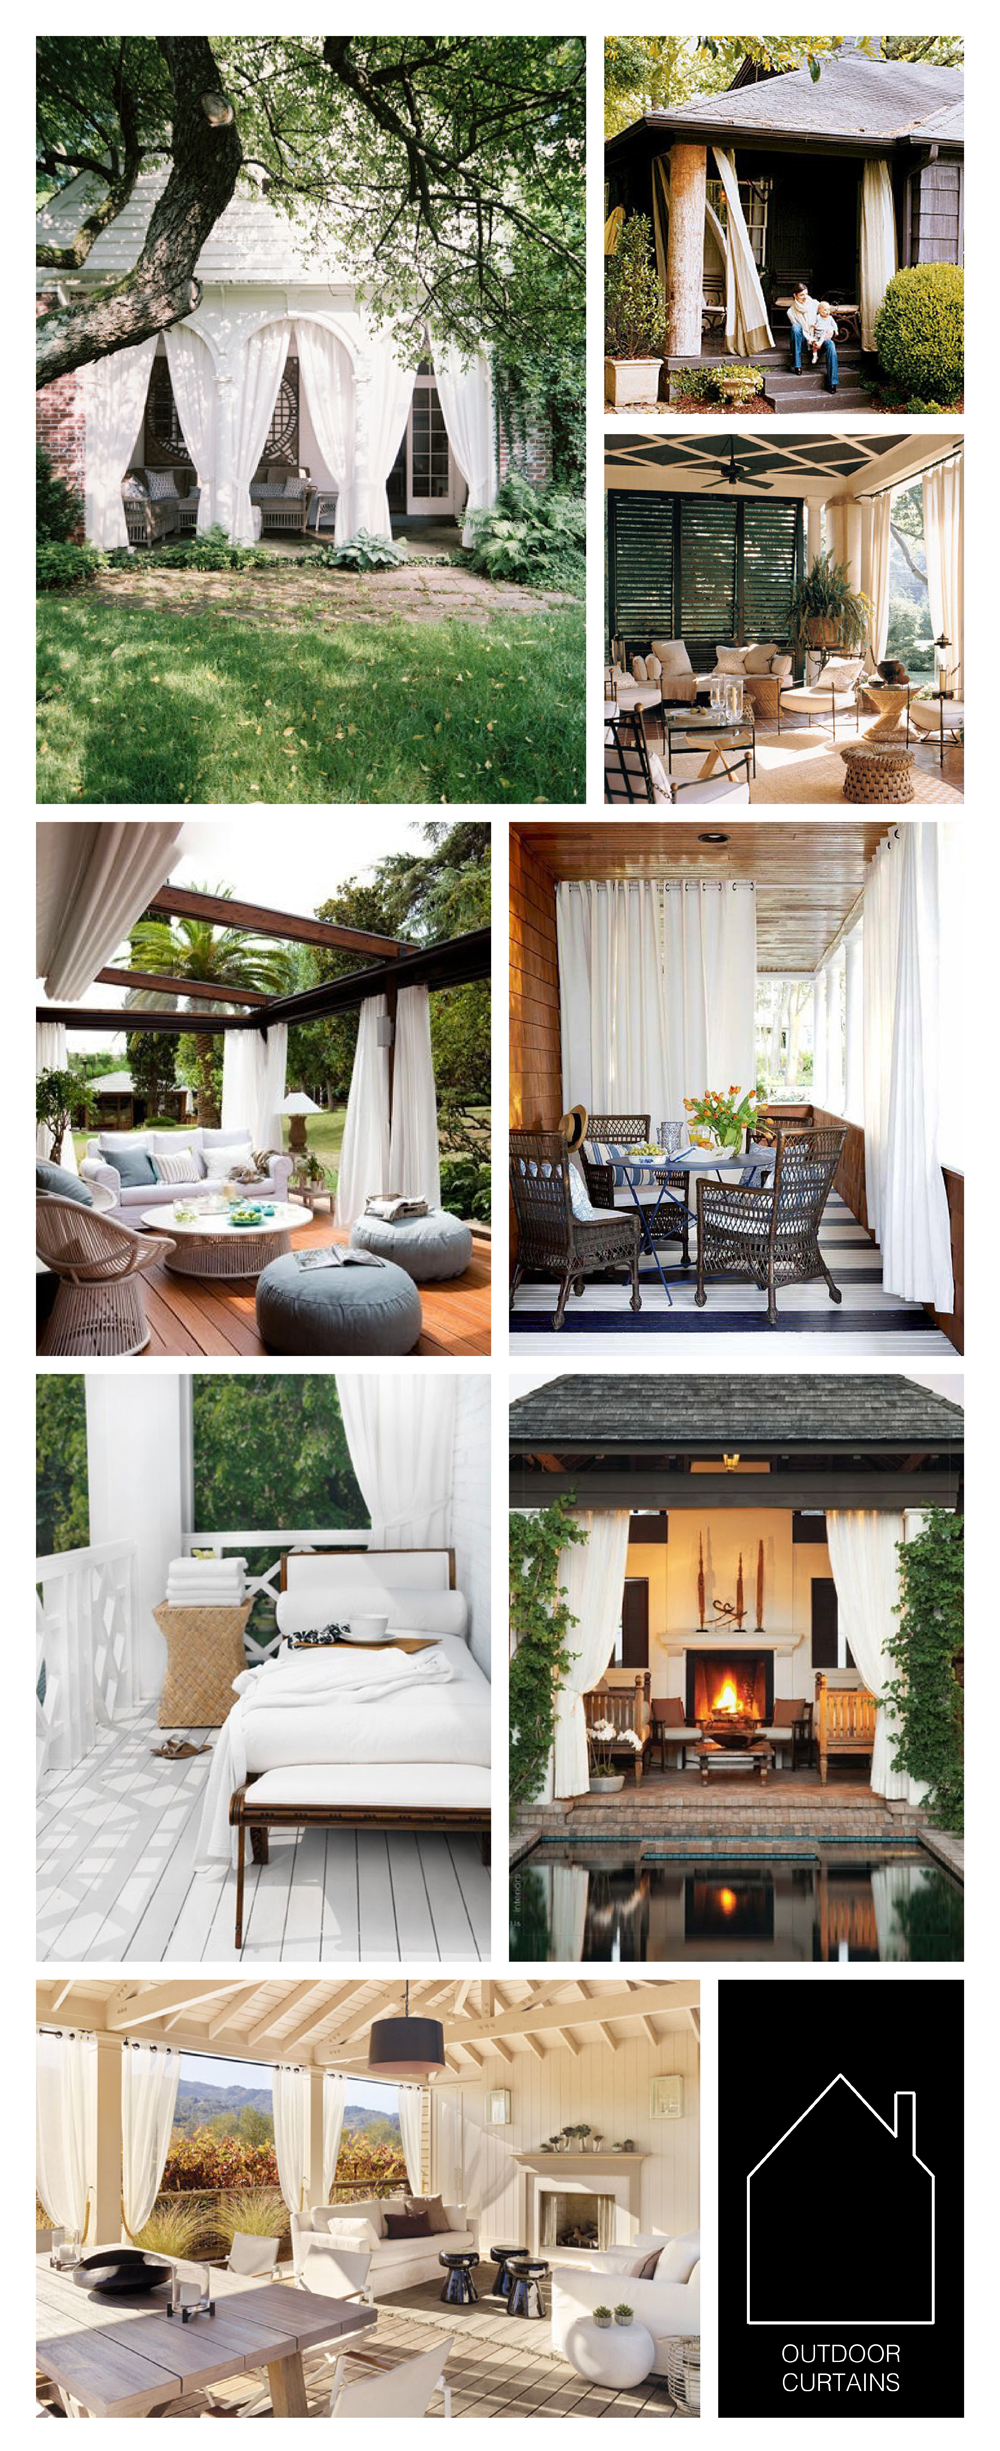 from top left  - home of J ohn Dransfield and Geoffrey Ross via  Lonny  - via  My House Ideas  -  via House Beautiful  - via  White + Gold  - source unknown - source unknown - via  Top Inspired  - Napa Valley home via  LUXE